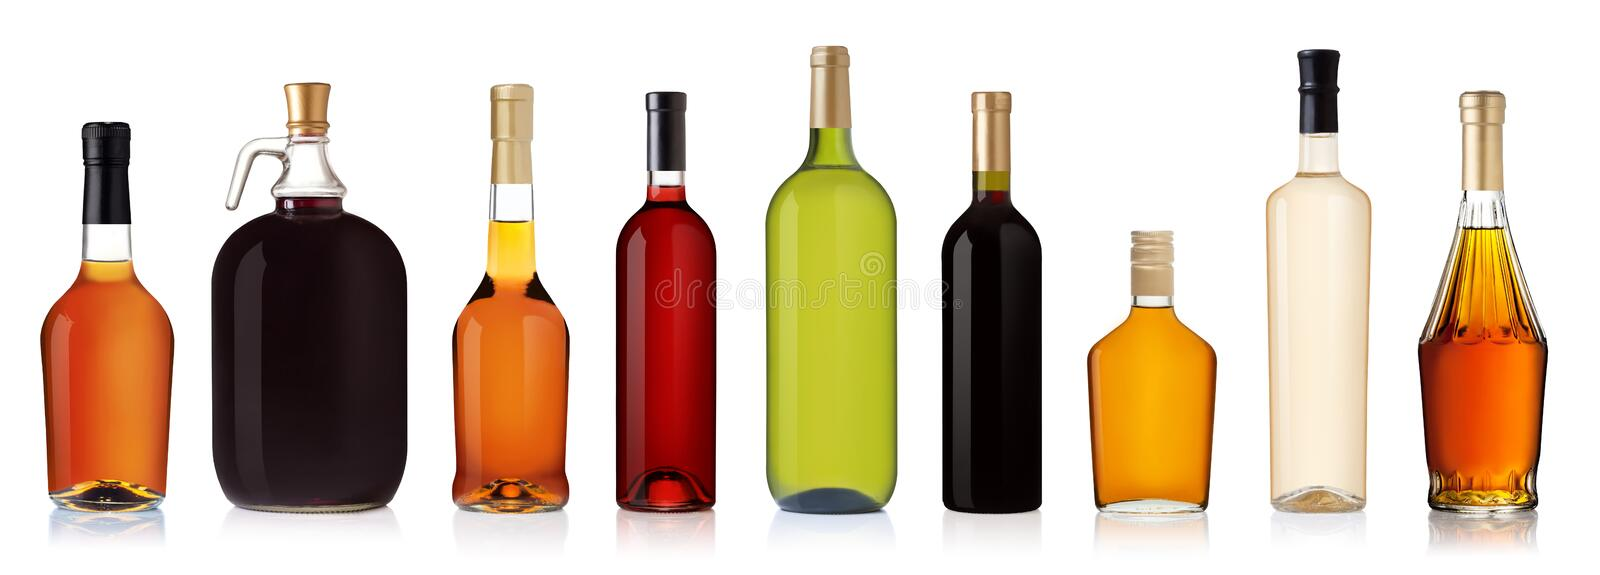 Set of wine and brandy bottles royalty free stock image